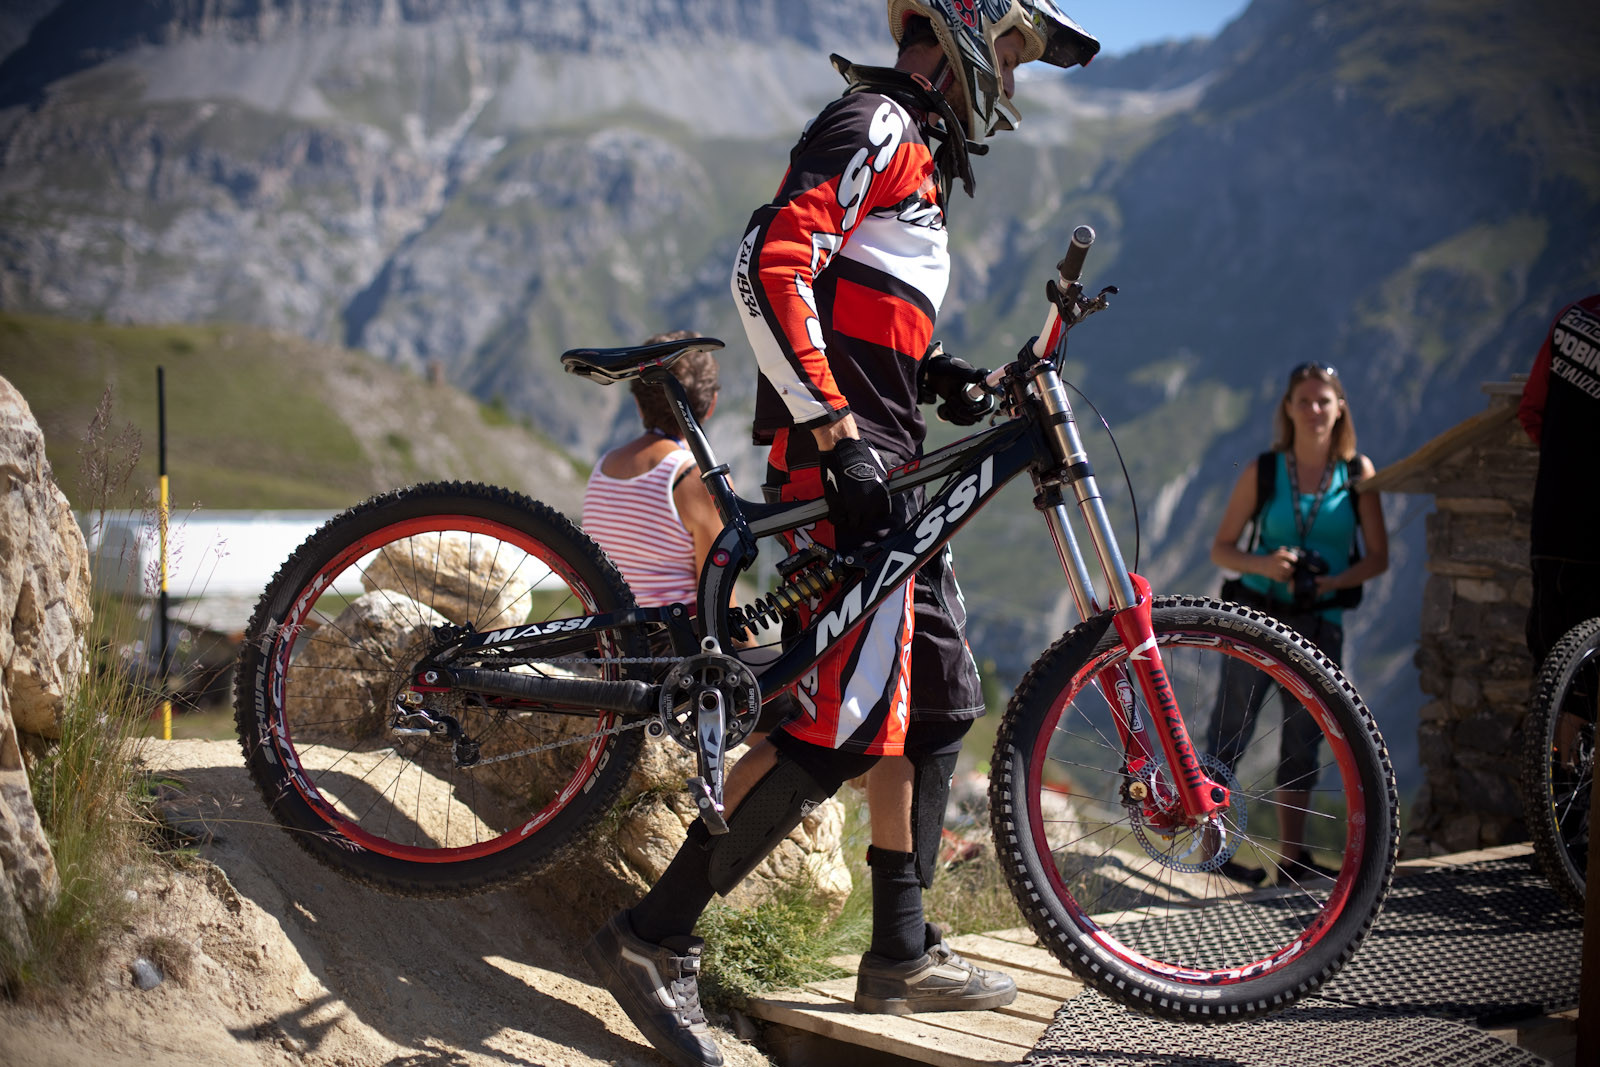 European DH Bikes from Val d'Isere - Massi Toro DH - European DH Bikes from Val d'Isere - Mountain Biking Pictures - Vital MTB